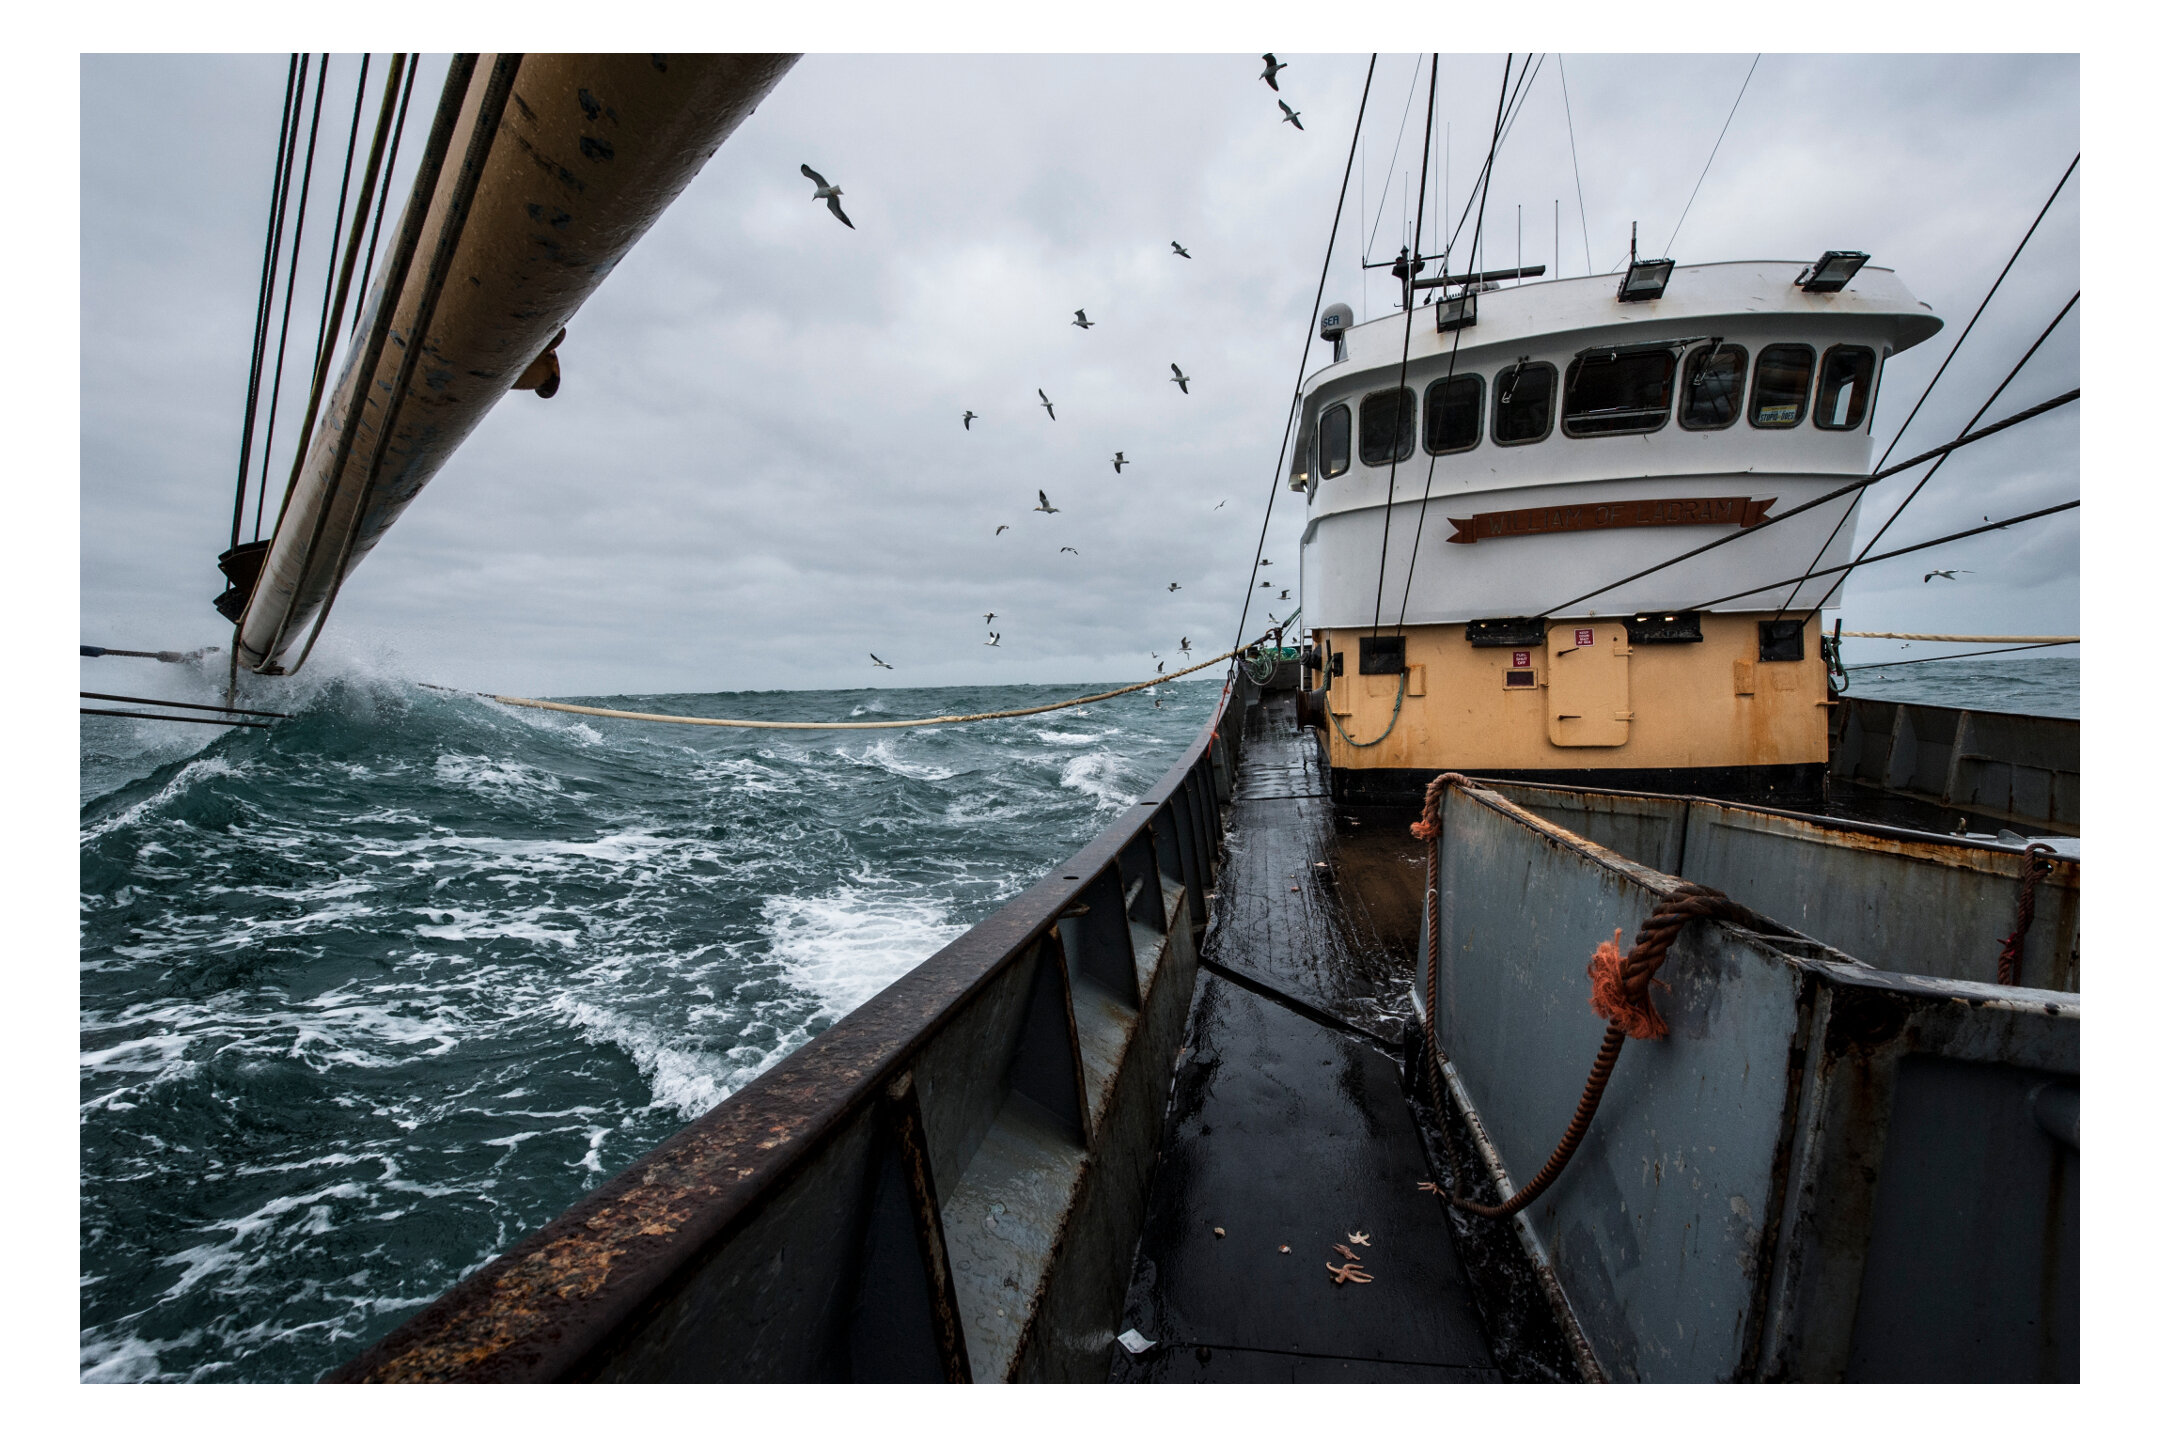 waterdance_beam_trawlers_2.jpg